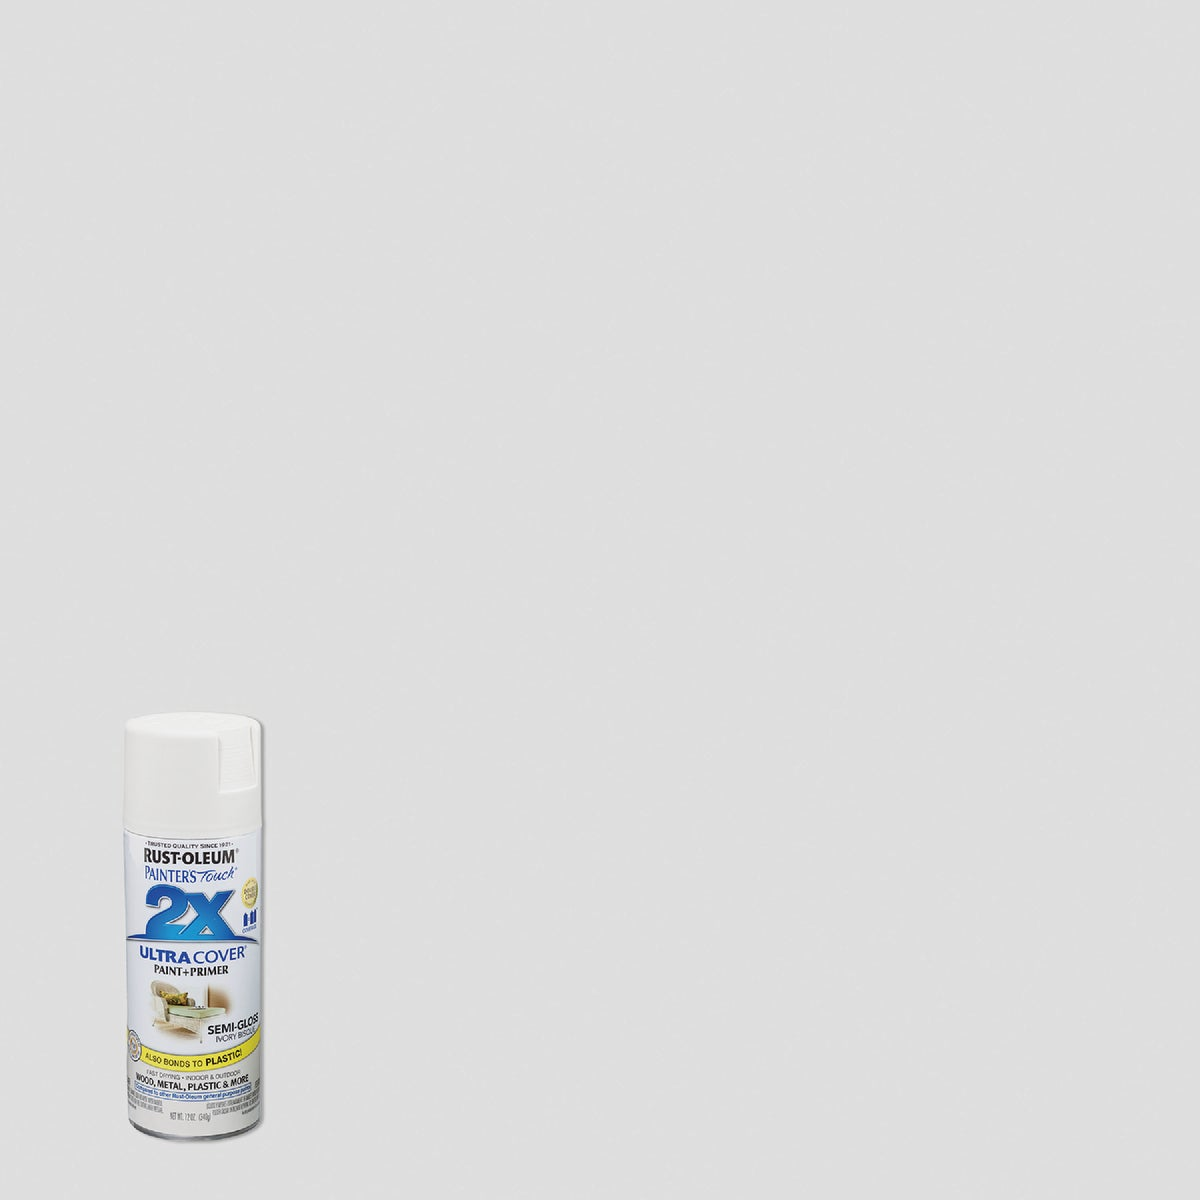 S/G IVRY BSQ SPRAY PAINT - 249860 by Rustoleum